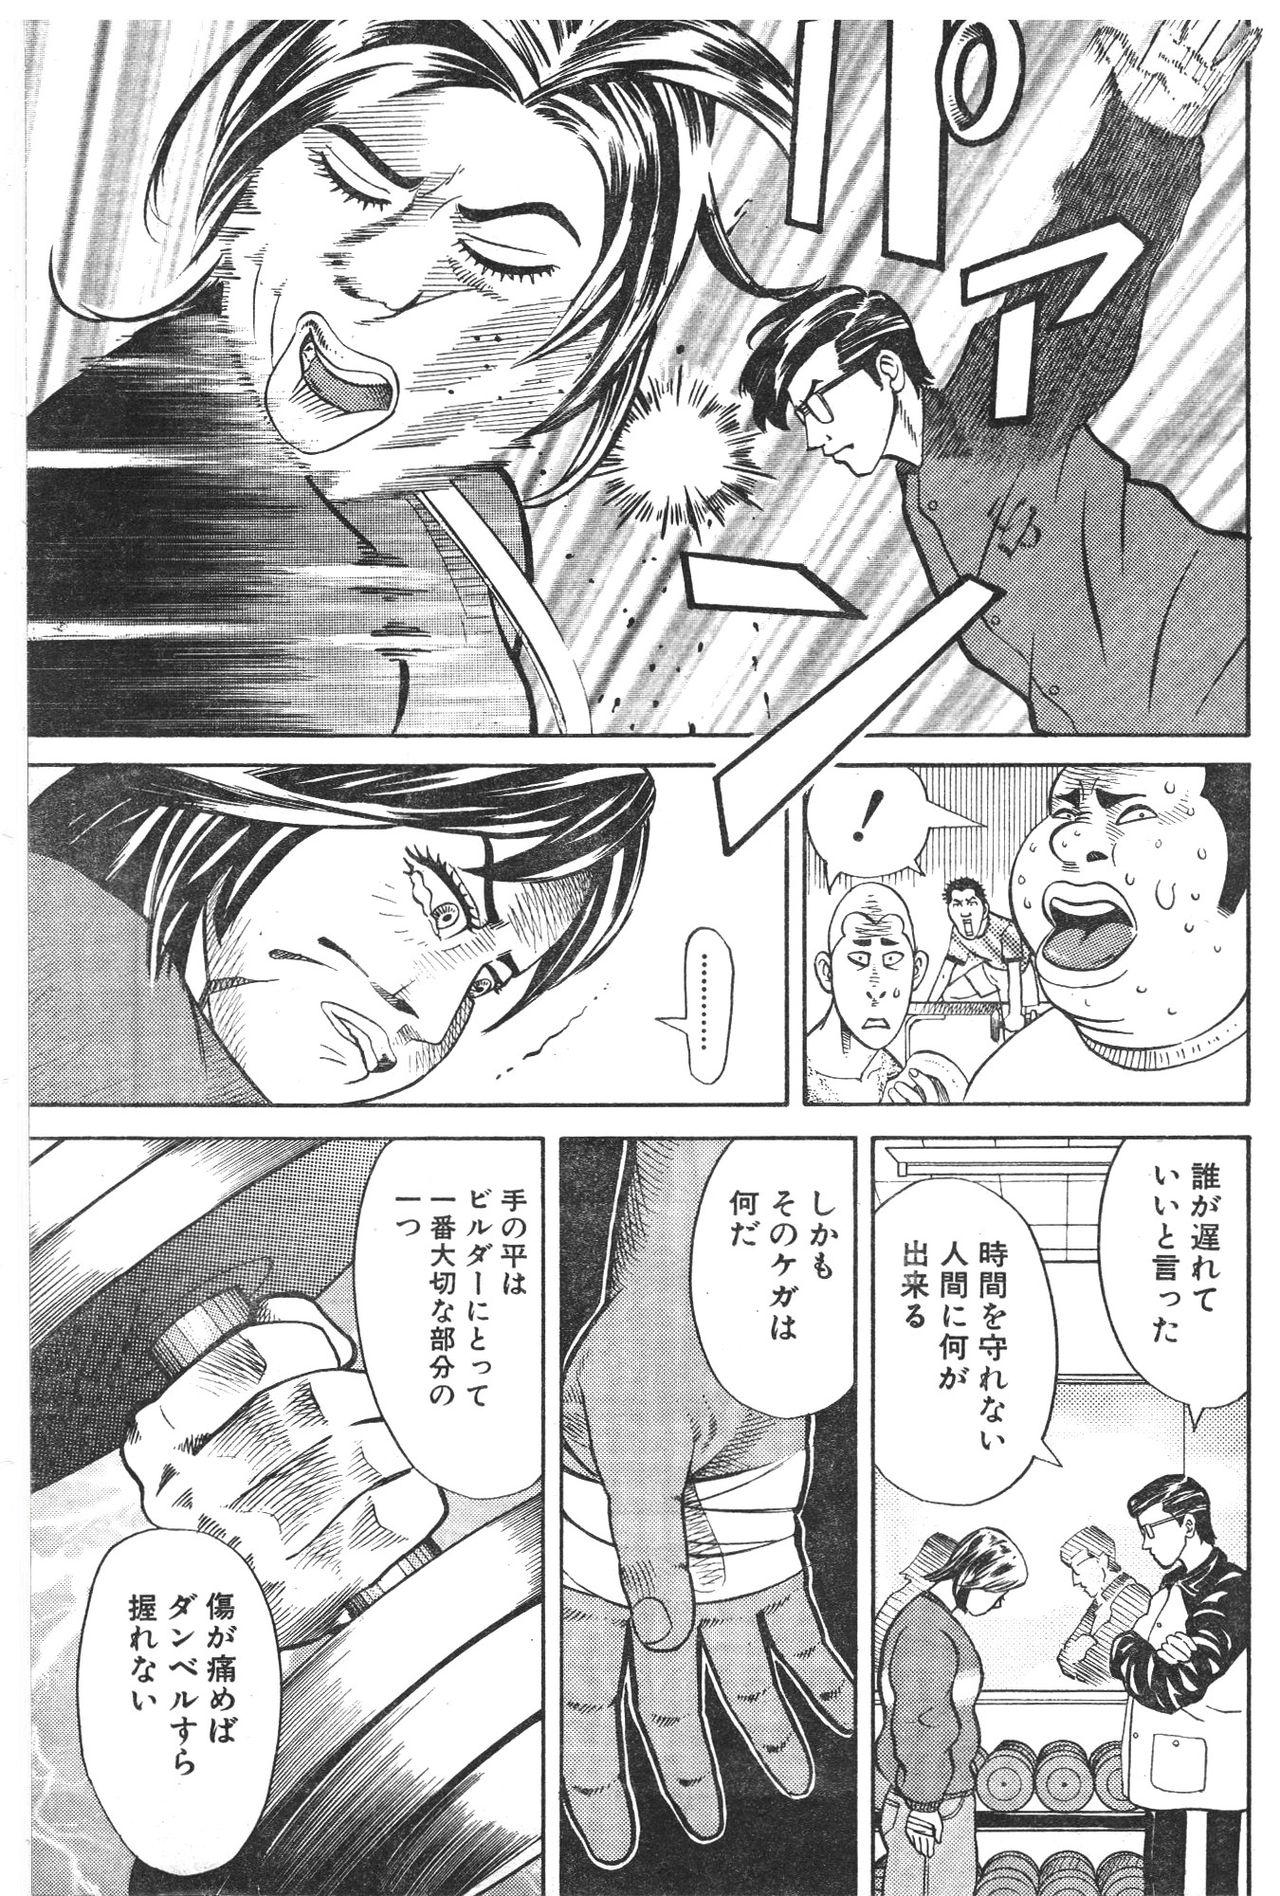 Muscle Strawberry Chapter 1 8